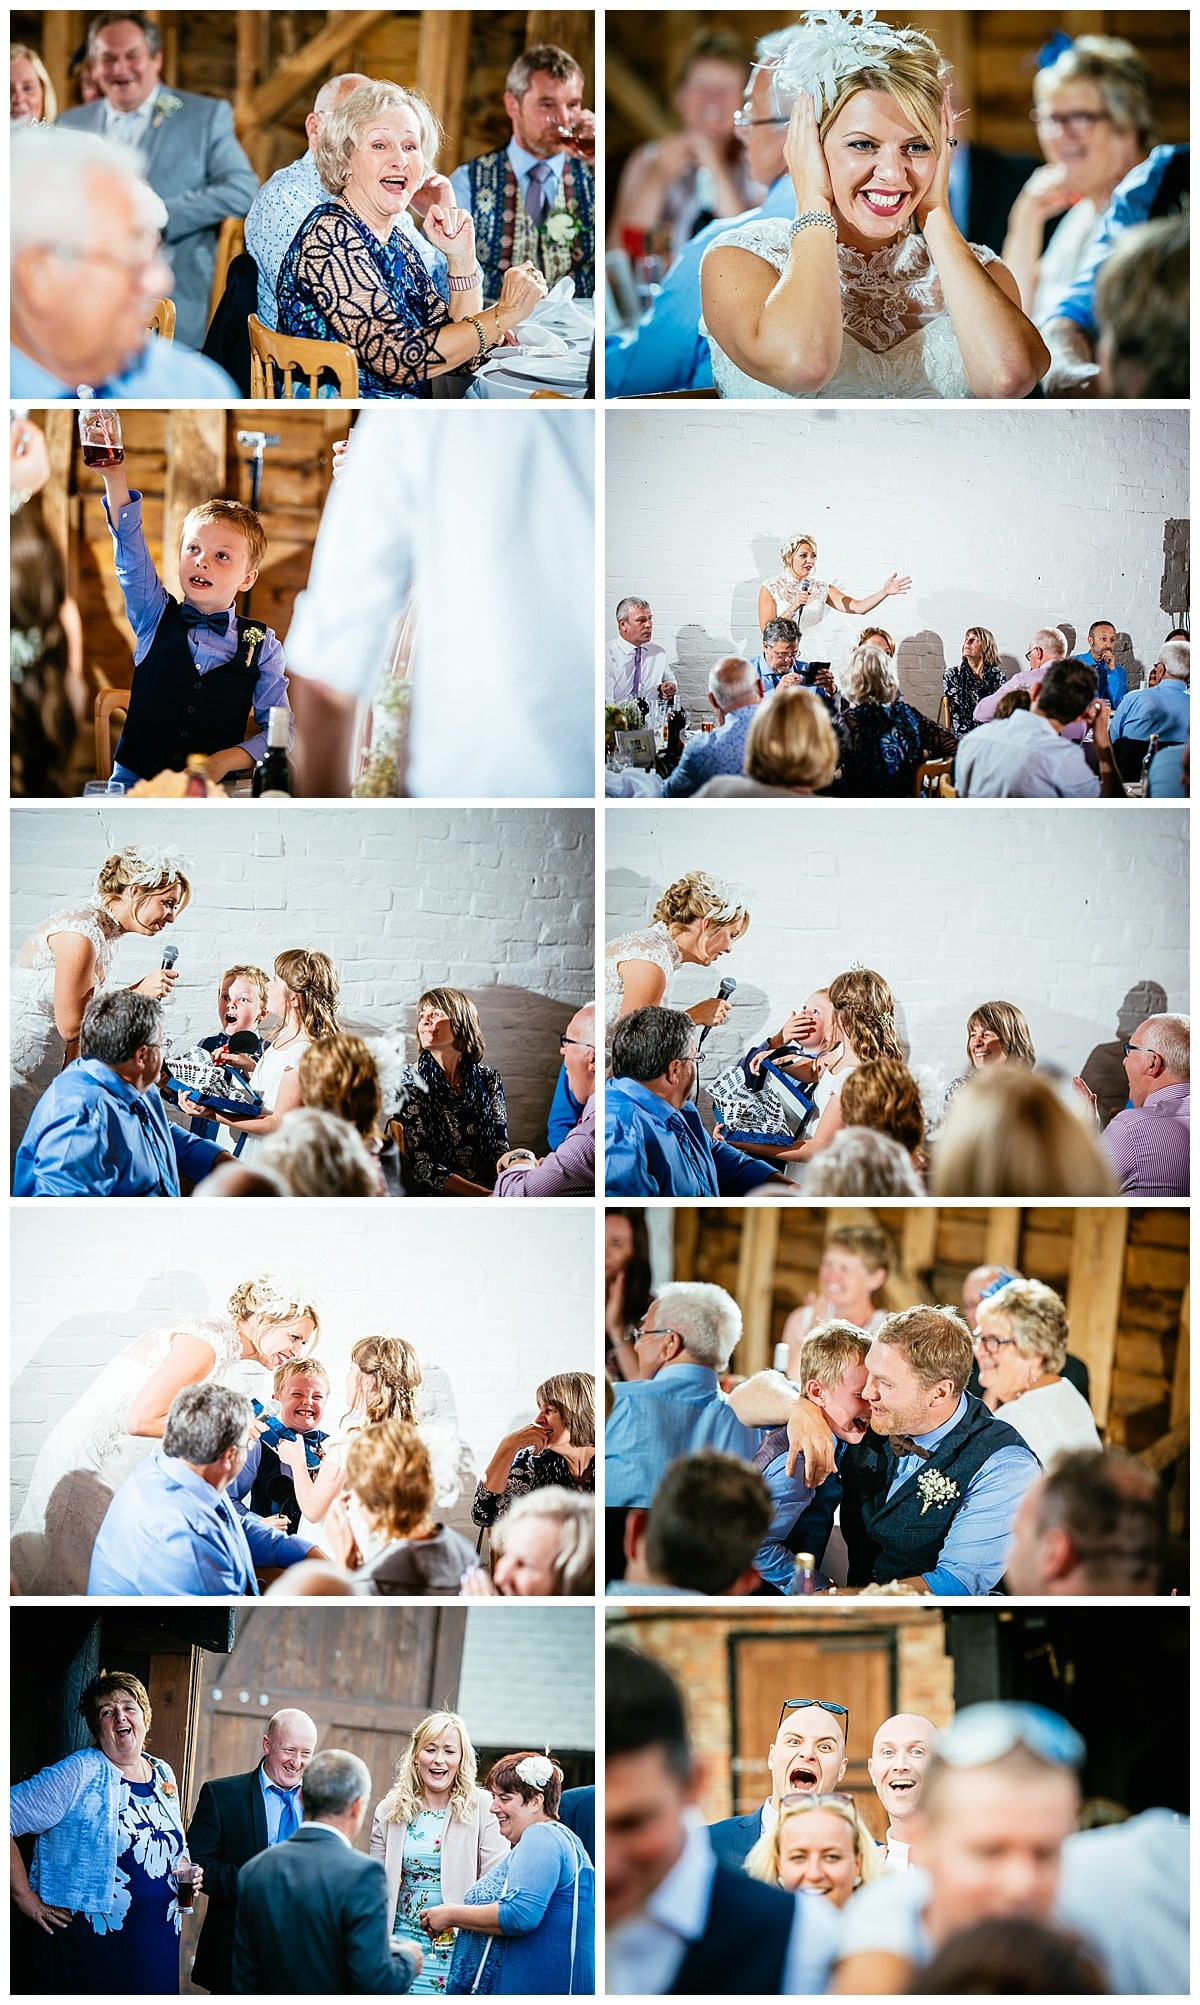 Colourful wedding photography from over barn